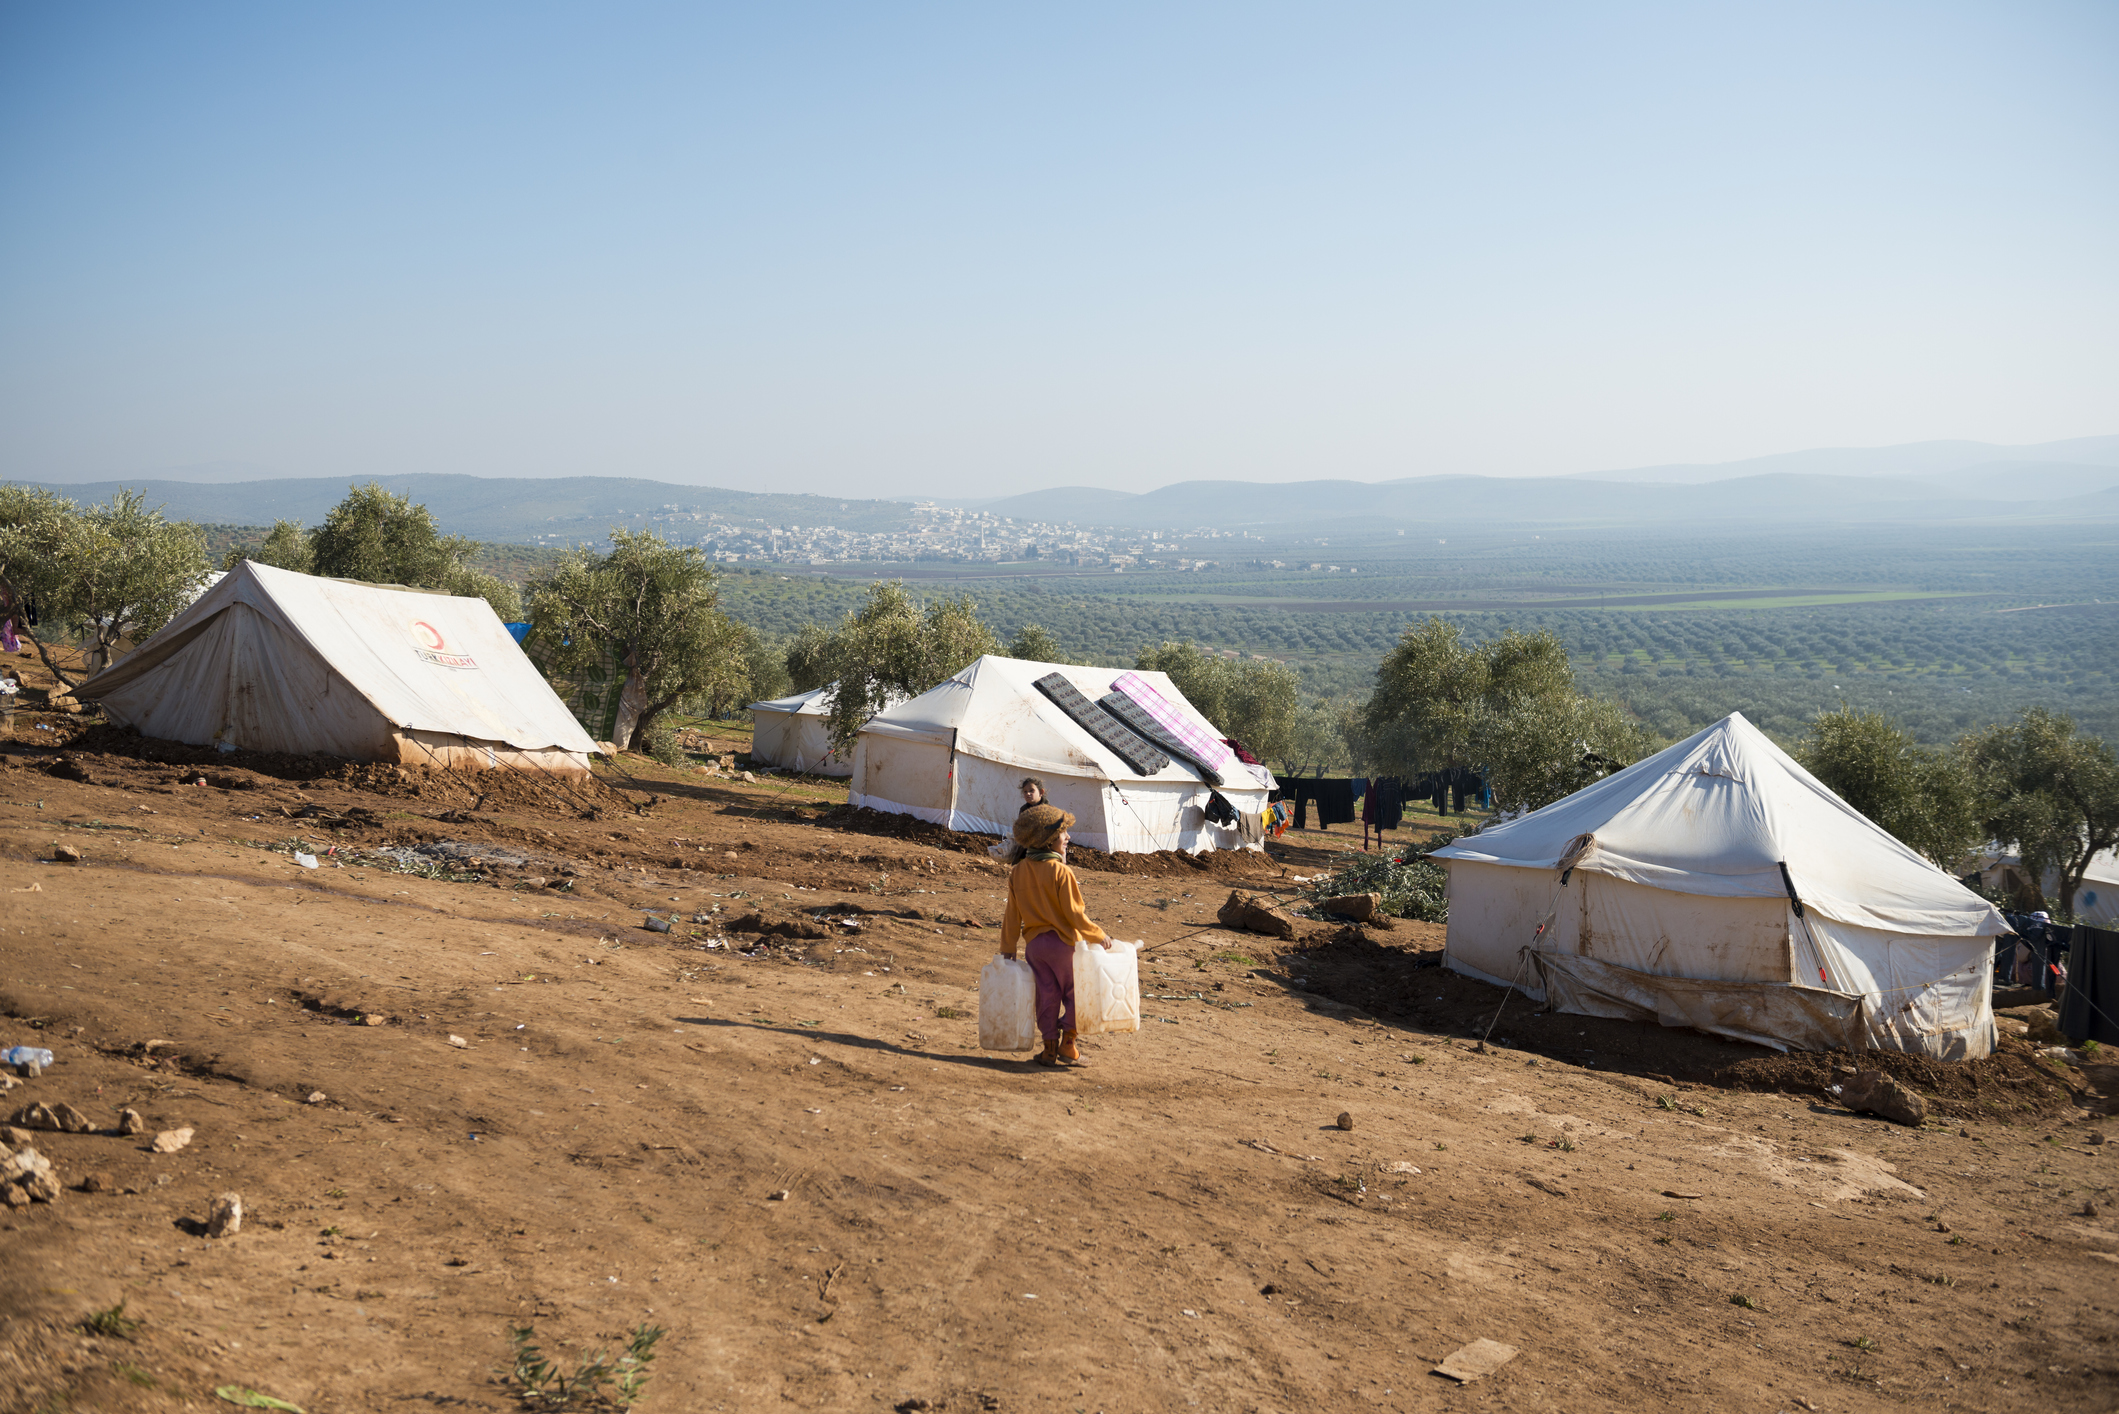 Refugees and landscape in Atmeh, Syria